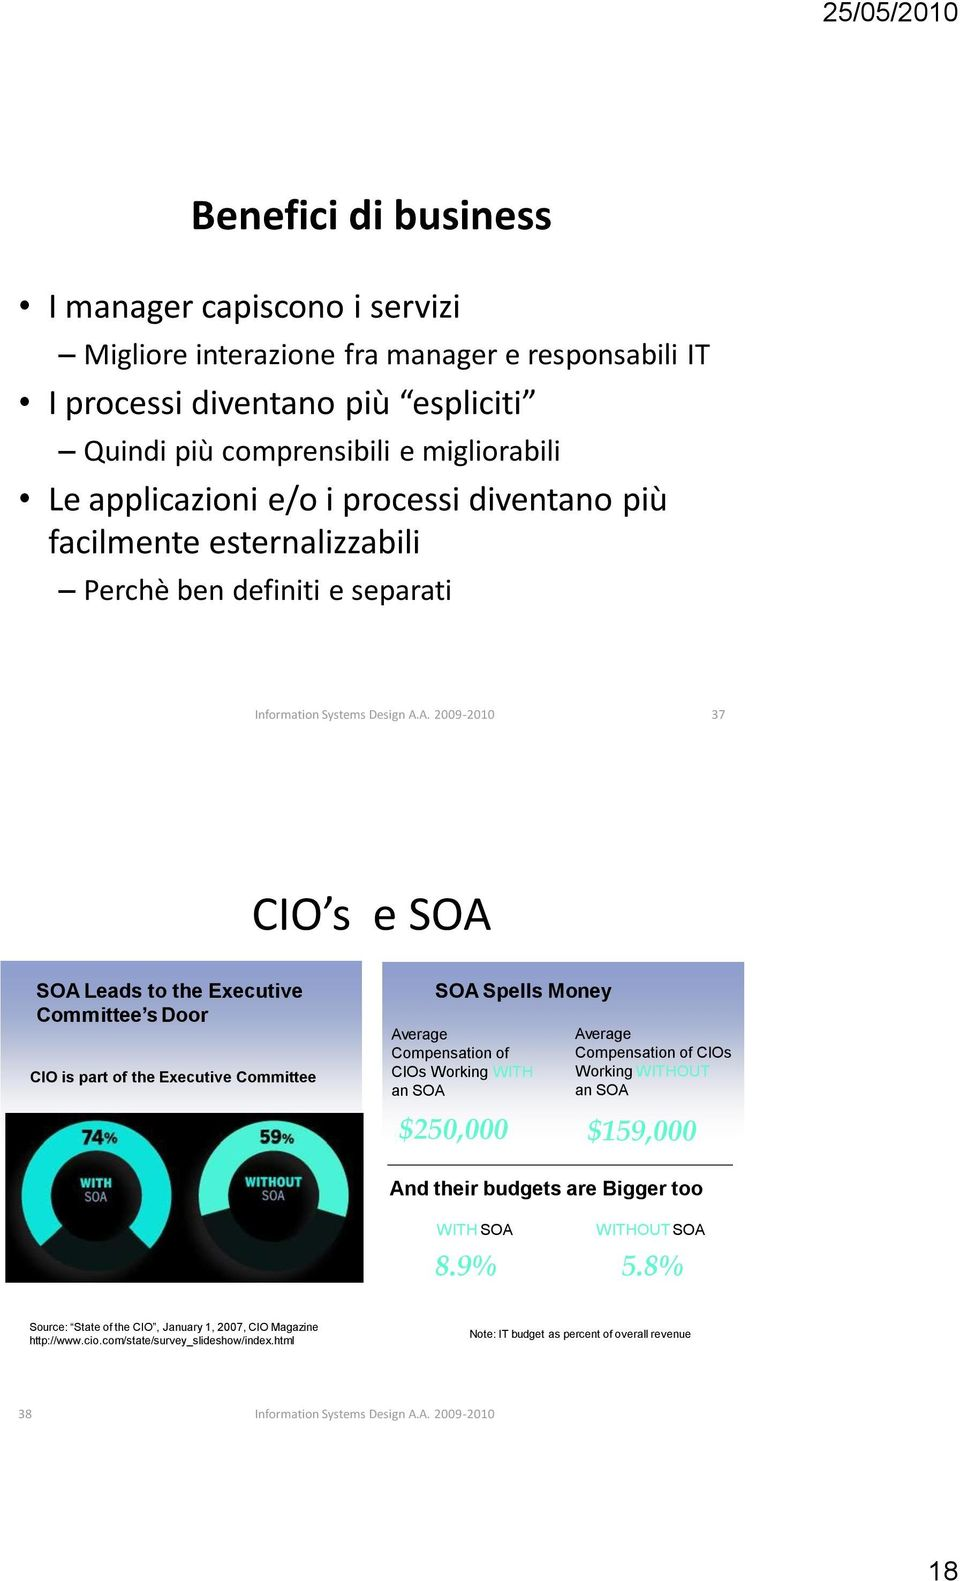 Executive Committee SOA Spells Money Average Compensation of CIOs Working WITH an SOA Average Compensation of CIOs Working WITHOUT an SOA $250,000 $159,000 And their budgets are Bigger